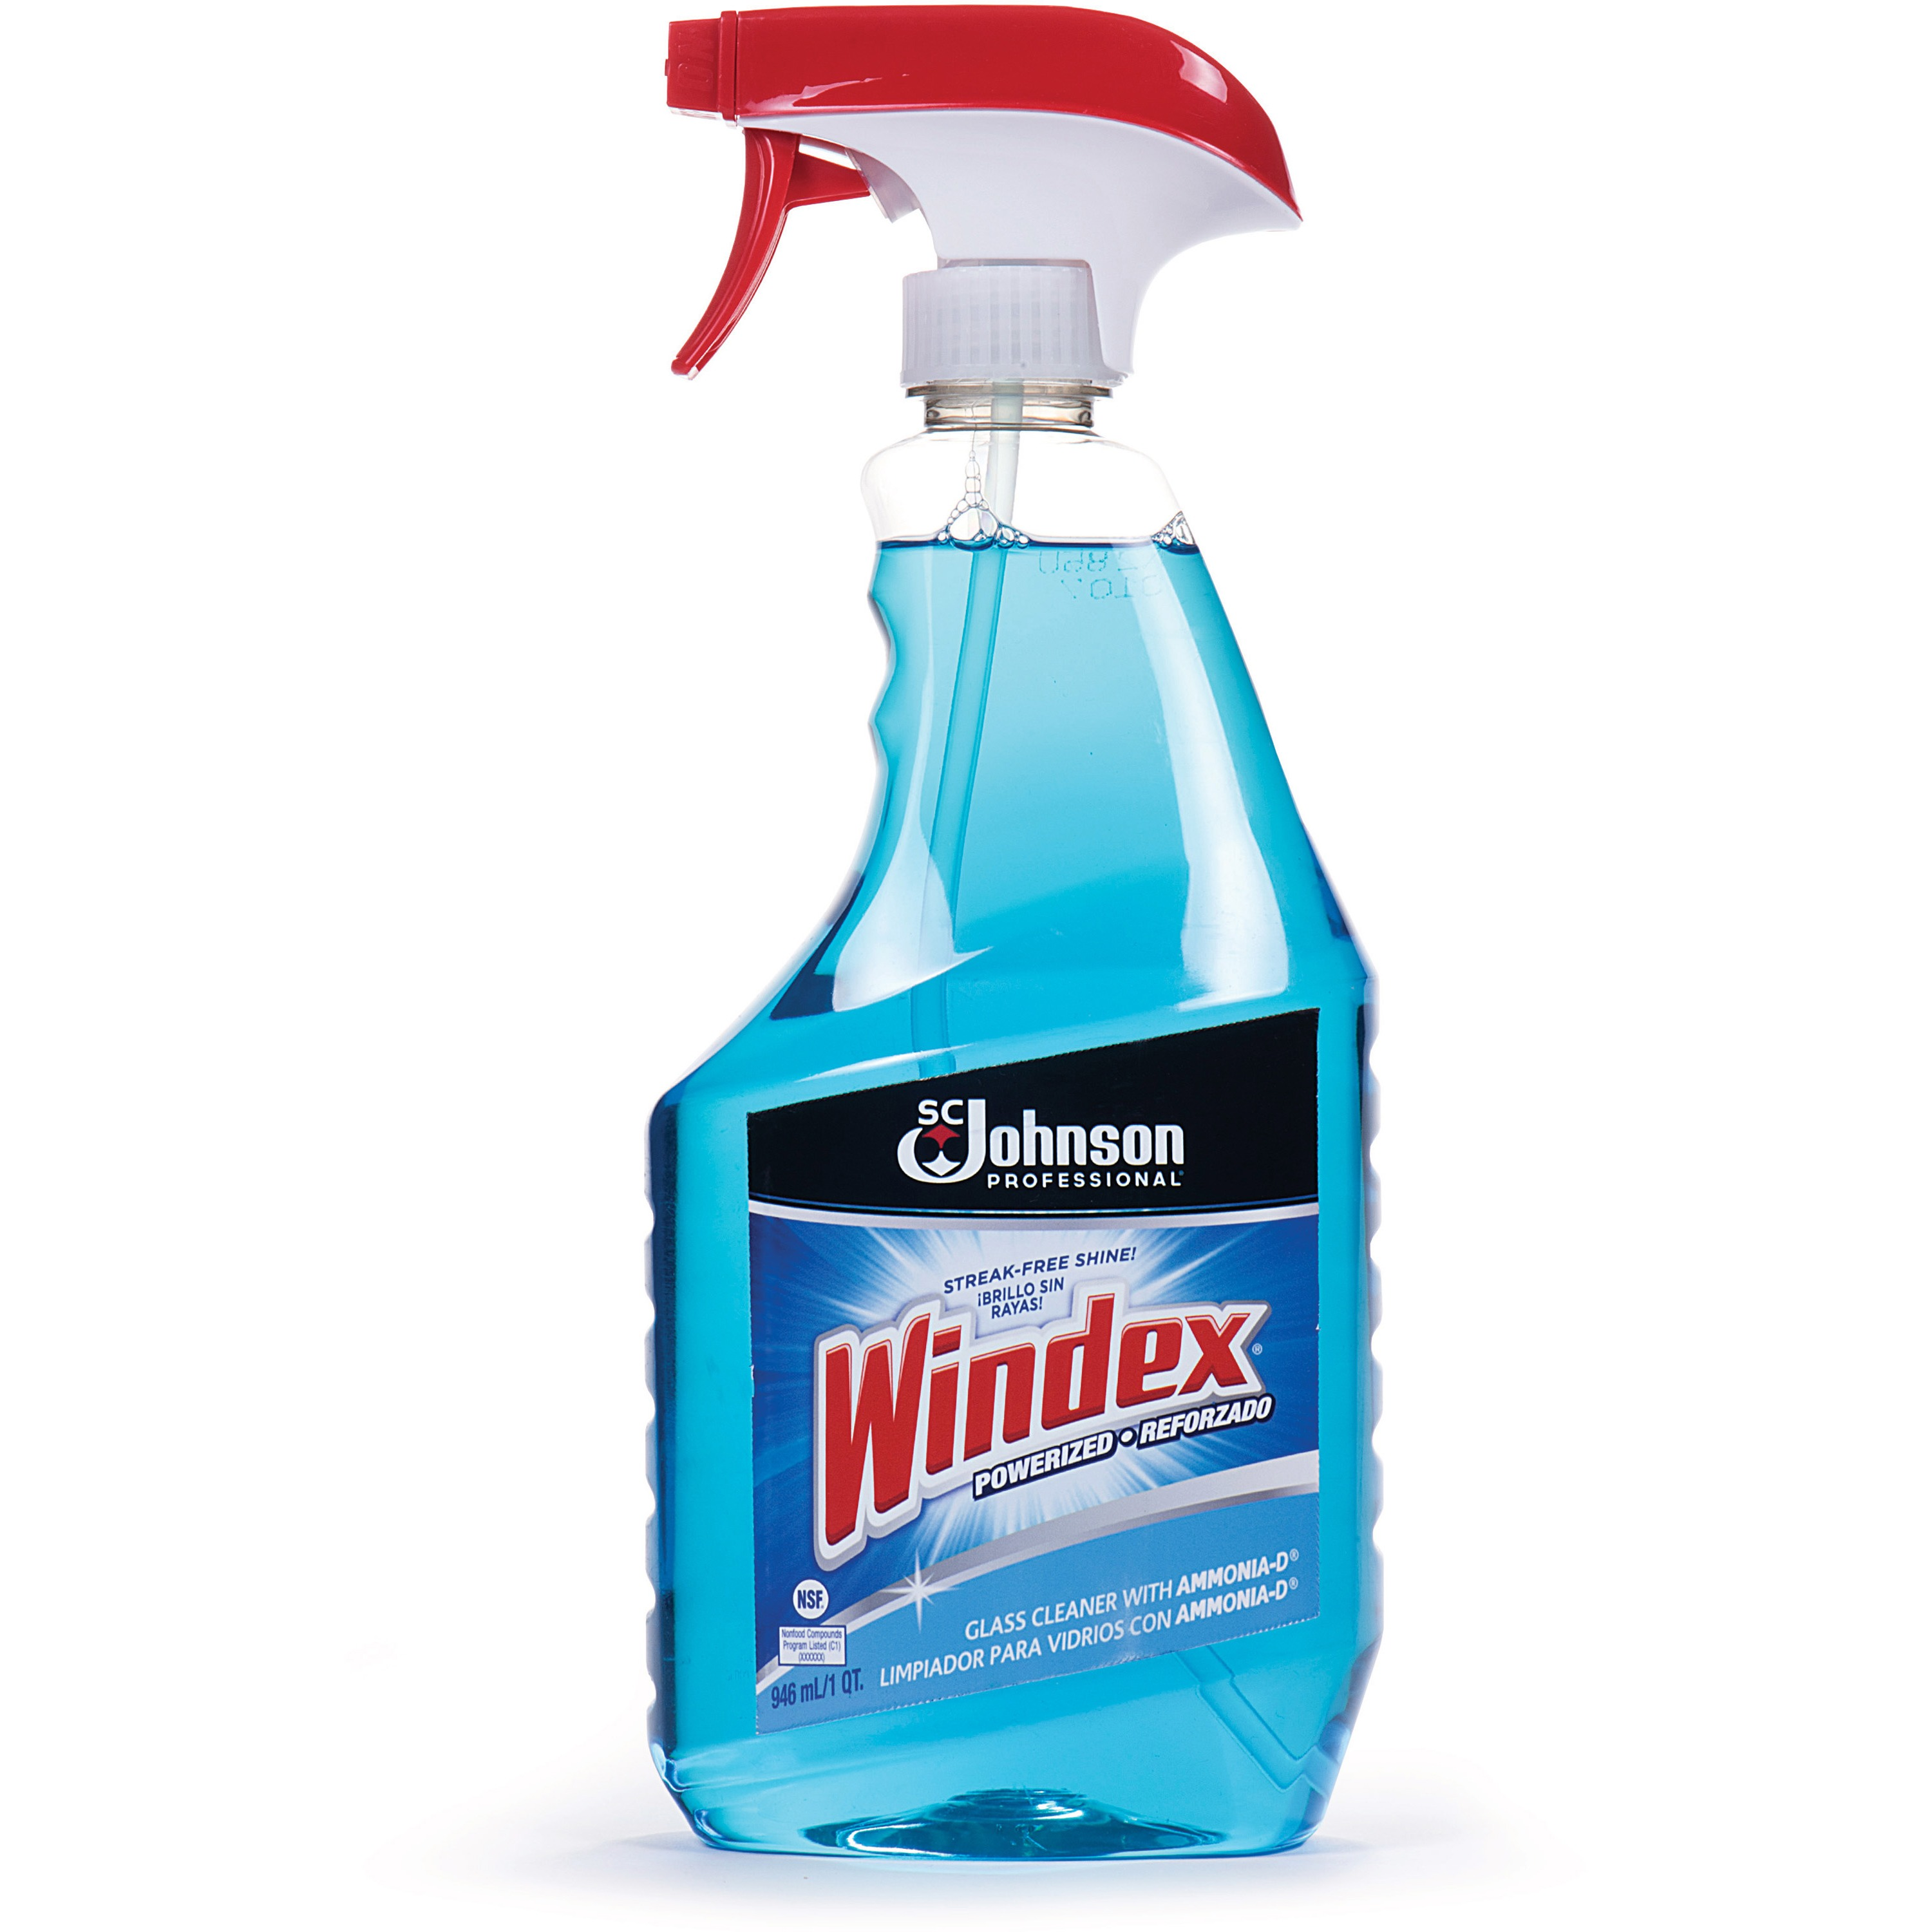 WINDEX 90135 Glass Cleaner, 32 oz, Blue, PK12